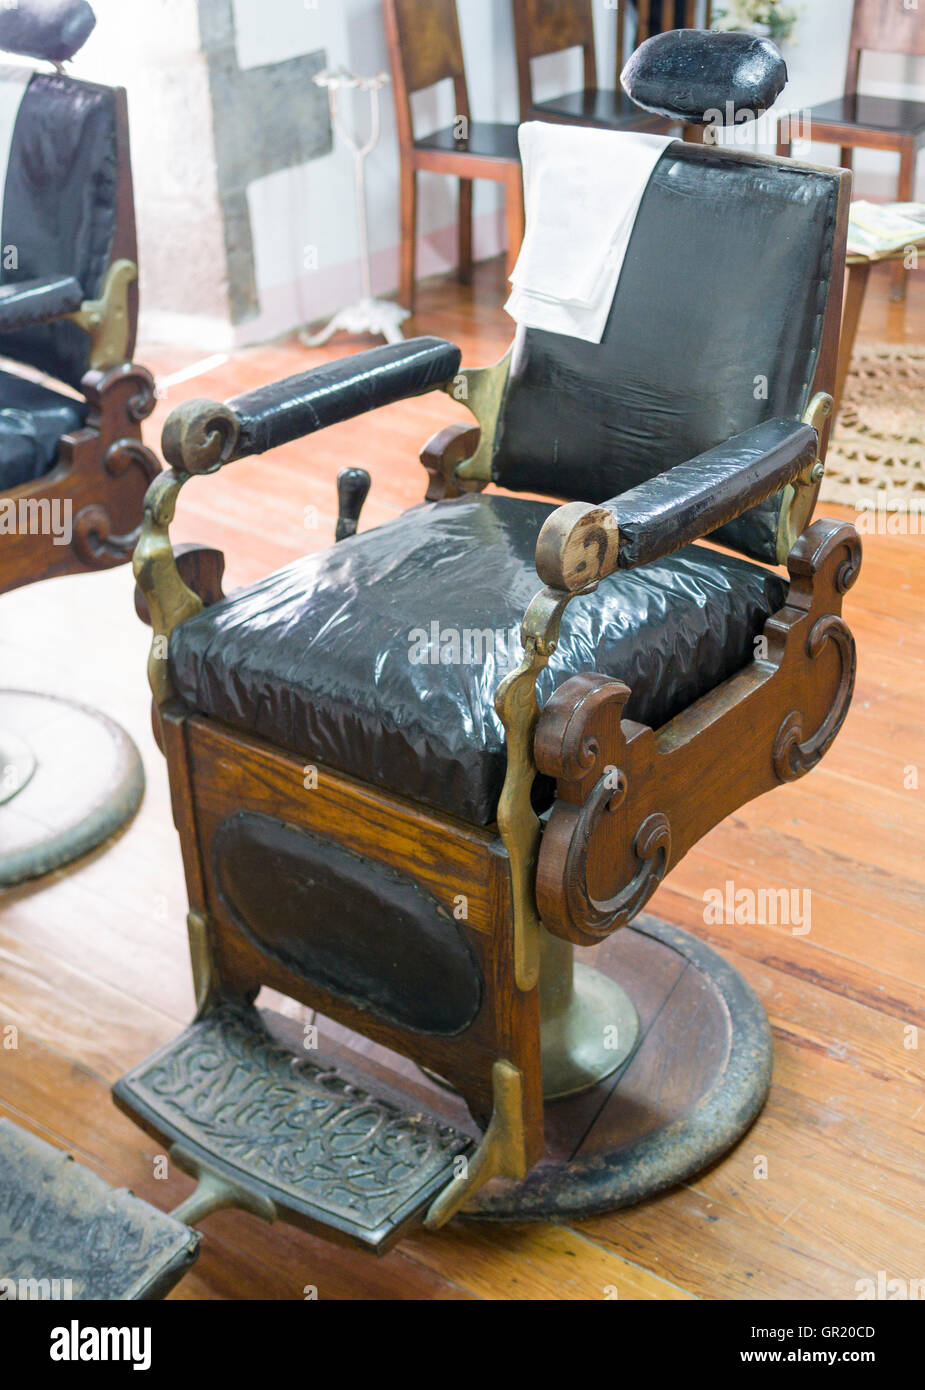 Antique Barber's Chair. The chair seems to be covered with shiny plastic  over the original - Old Antique Barber Chair Stock Photos & Old Antique Barber Chair